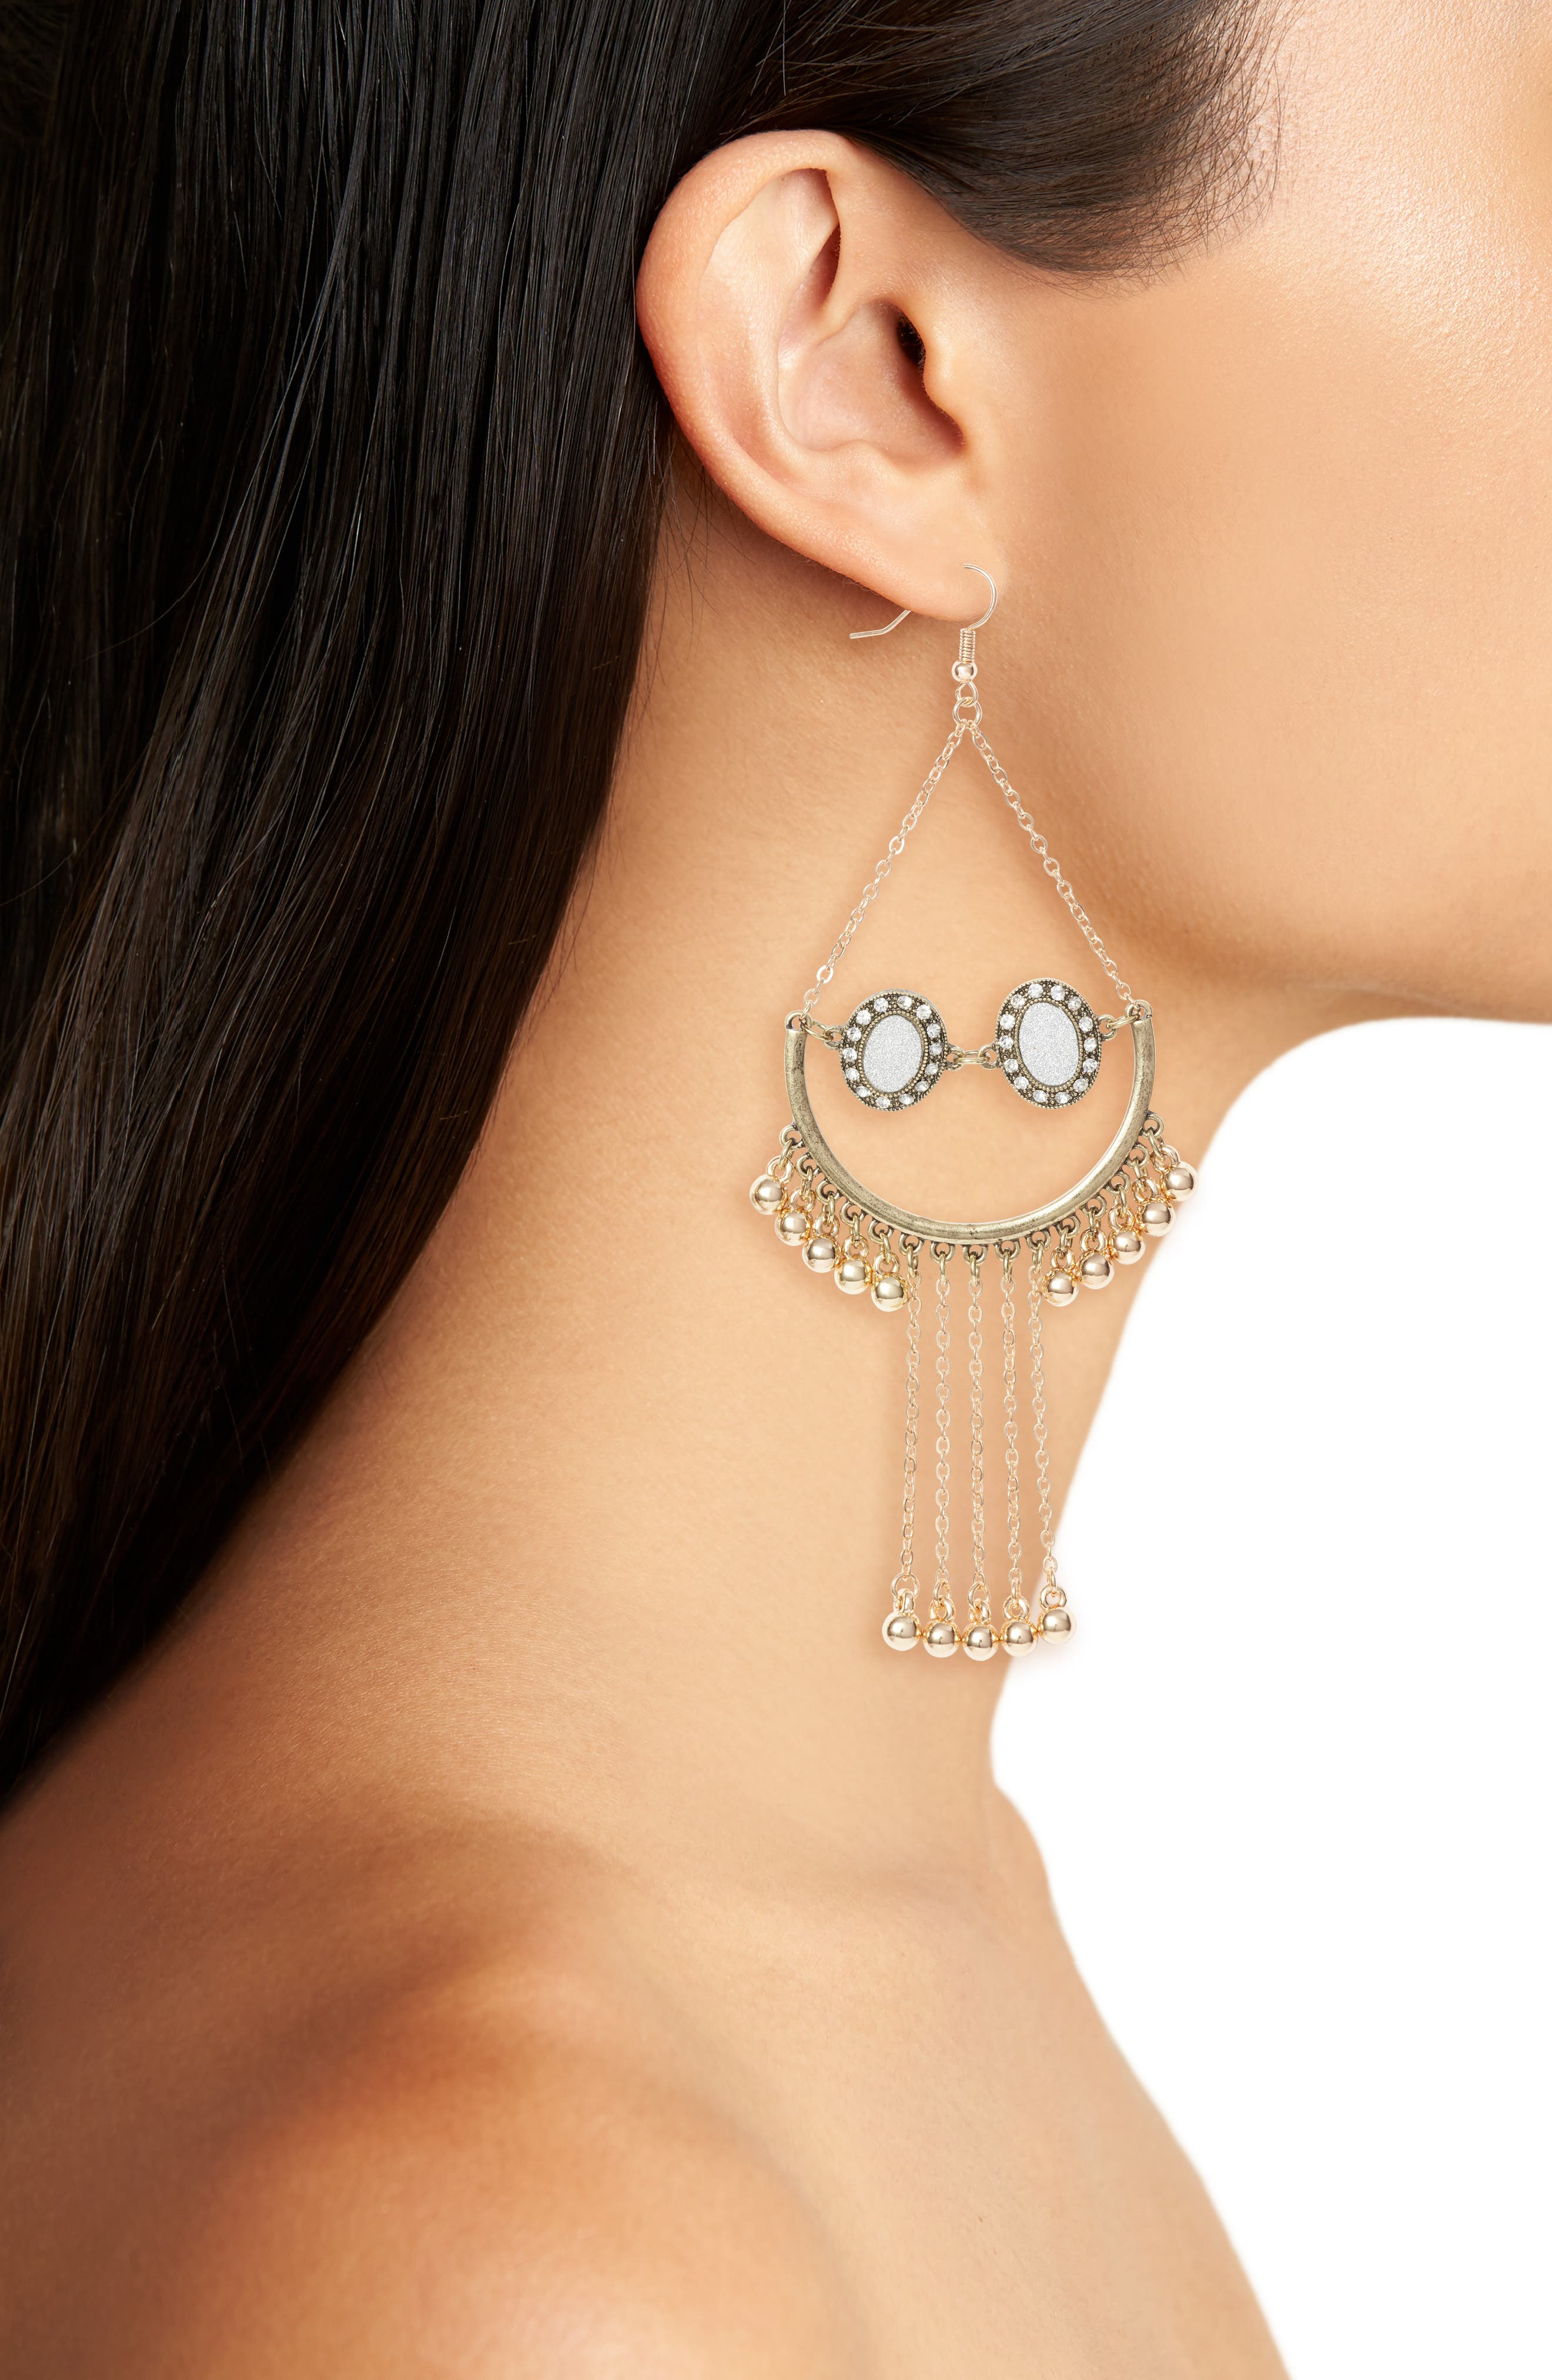 Tassel Statement Earrings,                             Alternate thumbnail 2, color,                             710